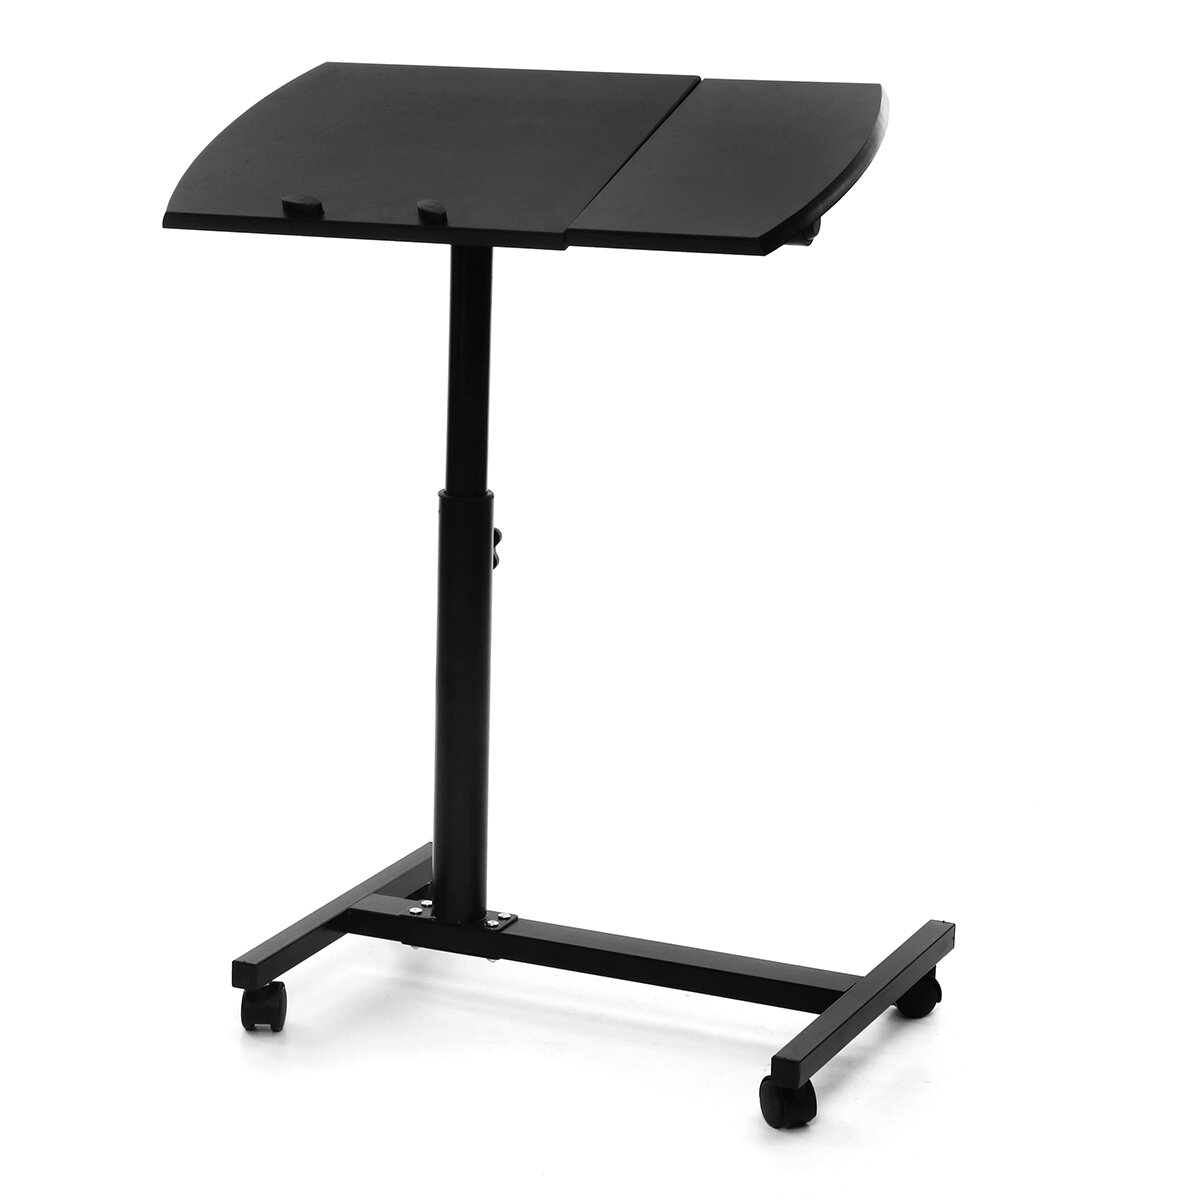 Adjule Height Laptop Stand Rolling